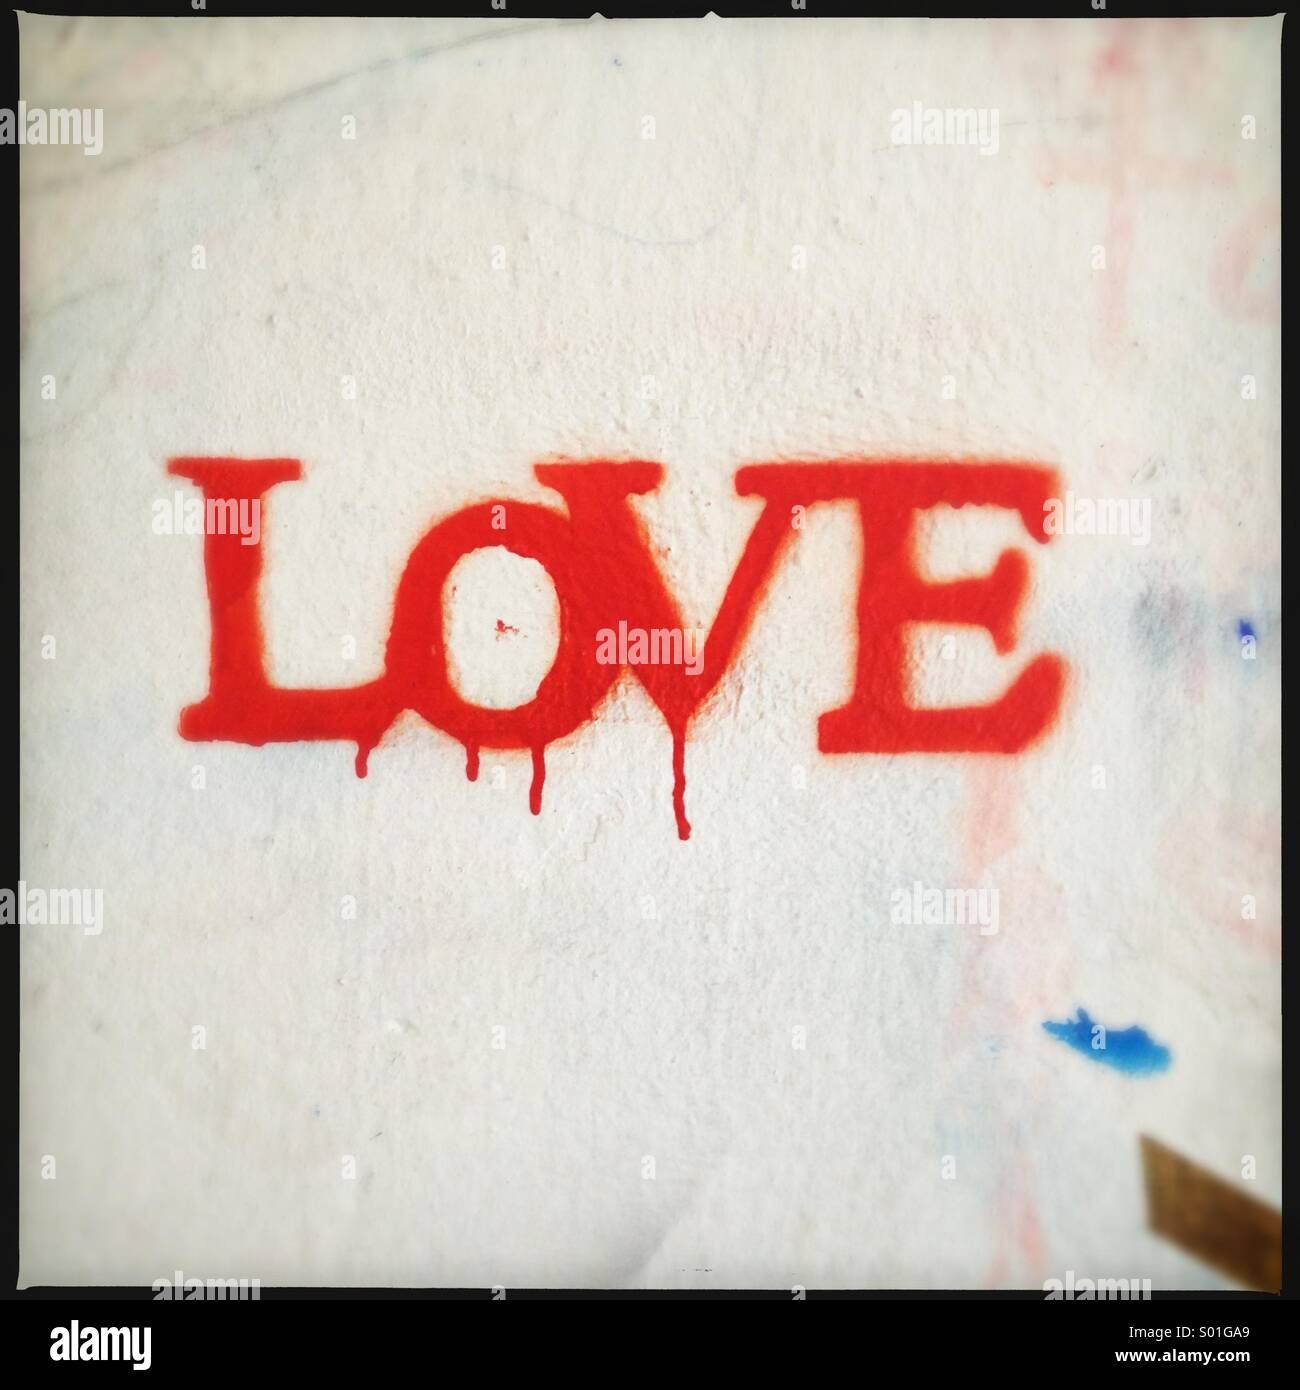 'Love' as red stencil graffiti on a white wall. - Stock Image